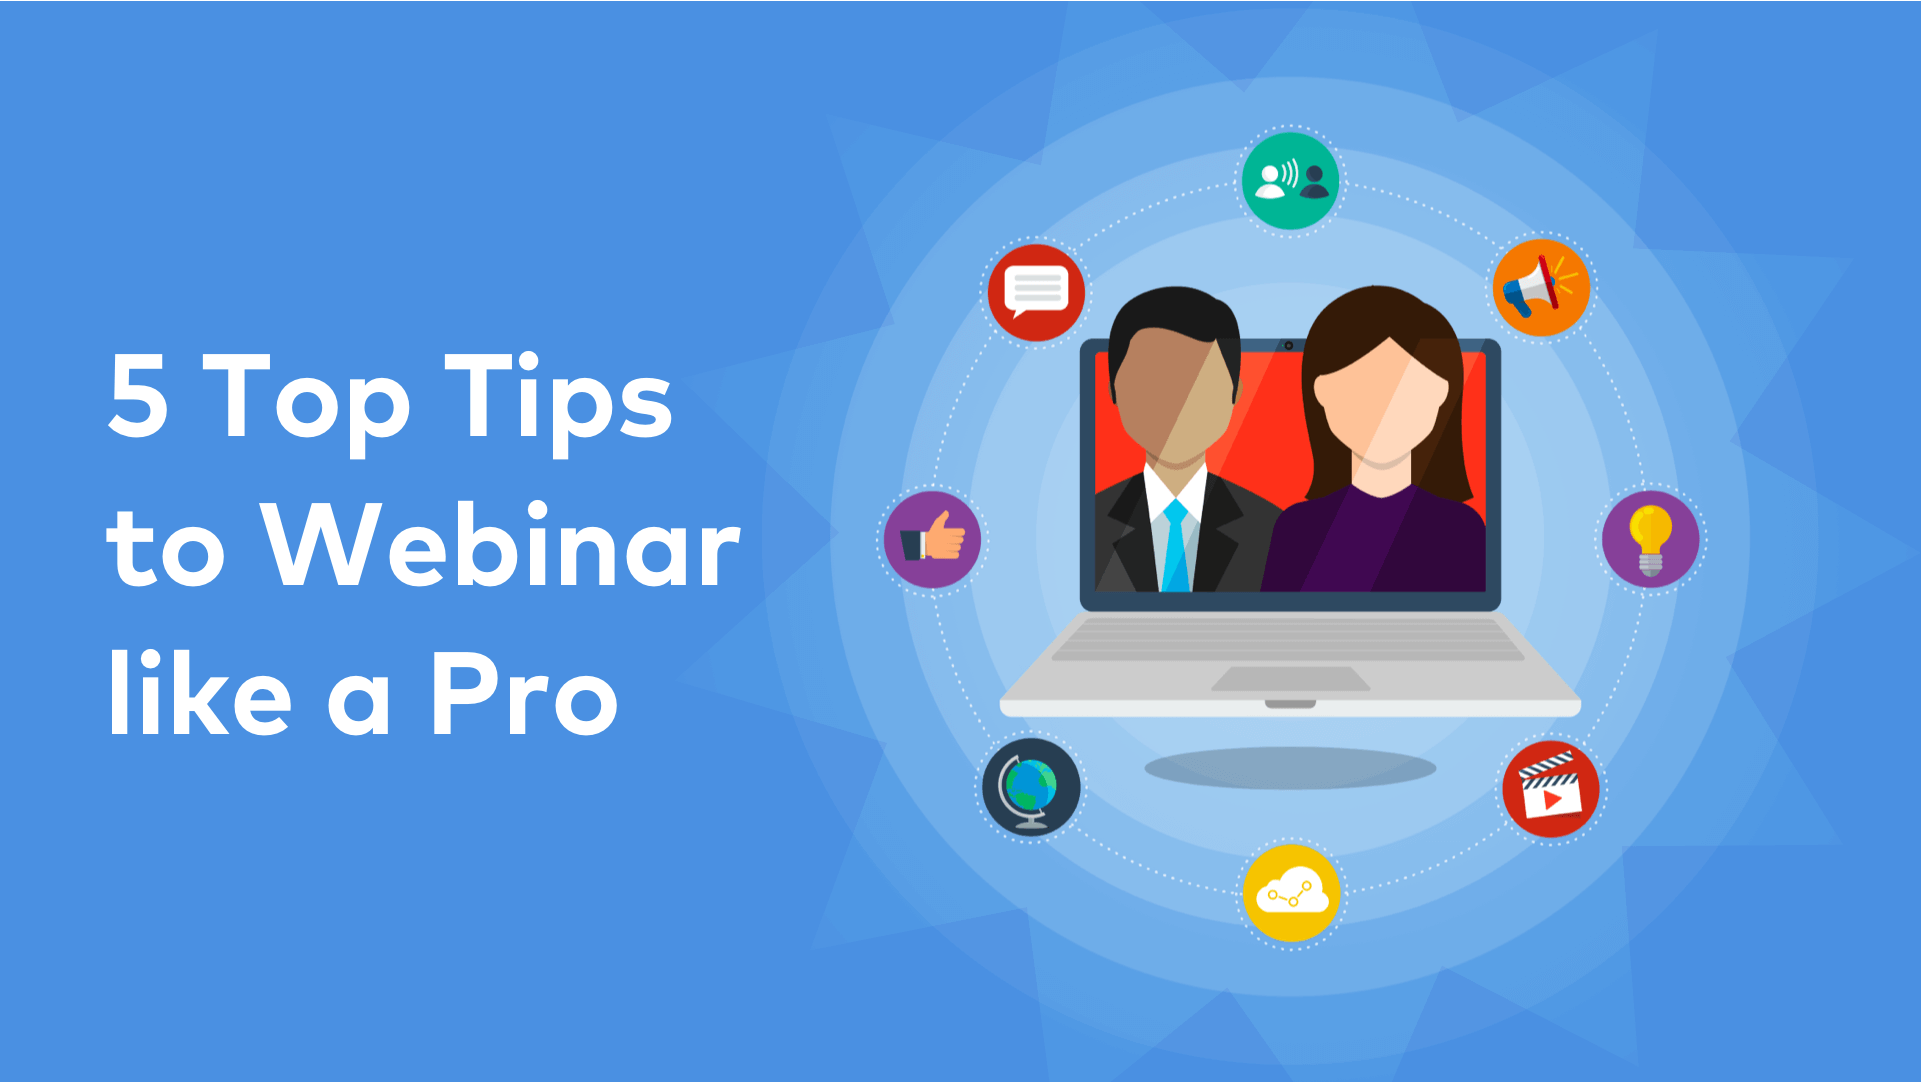 Cover image for post: 5 Top Tips to Webinar like a Pro